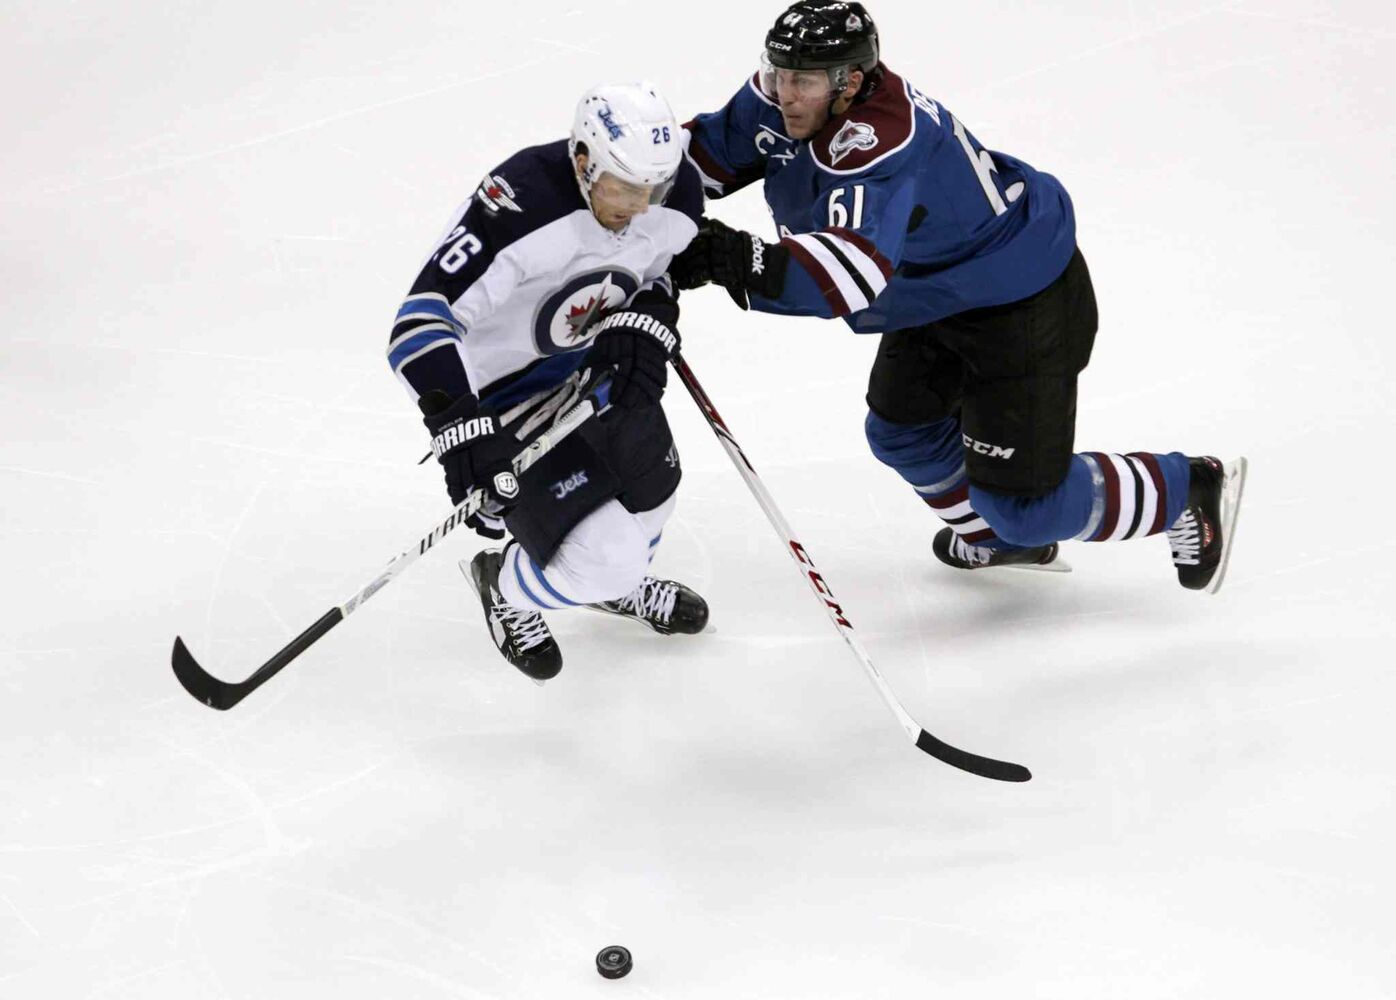 Colorado Avalanche defenceman Andre Benoit (right) pushes Winnipeg Jets winger Blake Wheeler away from the puck during the first period of Sunday's game in Denver, Colo.